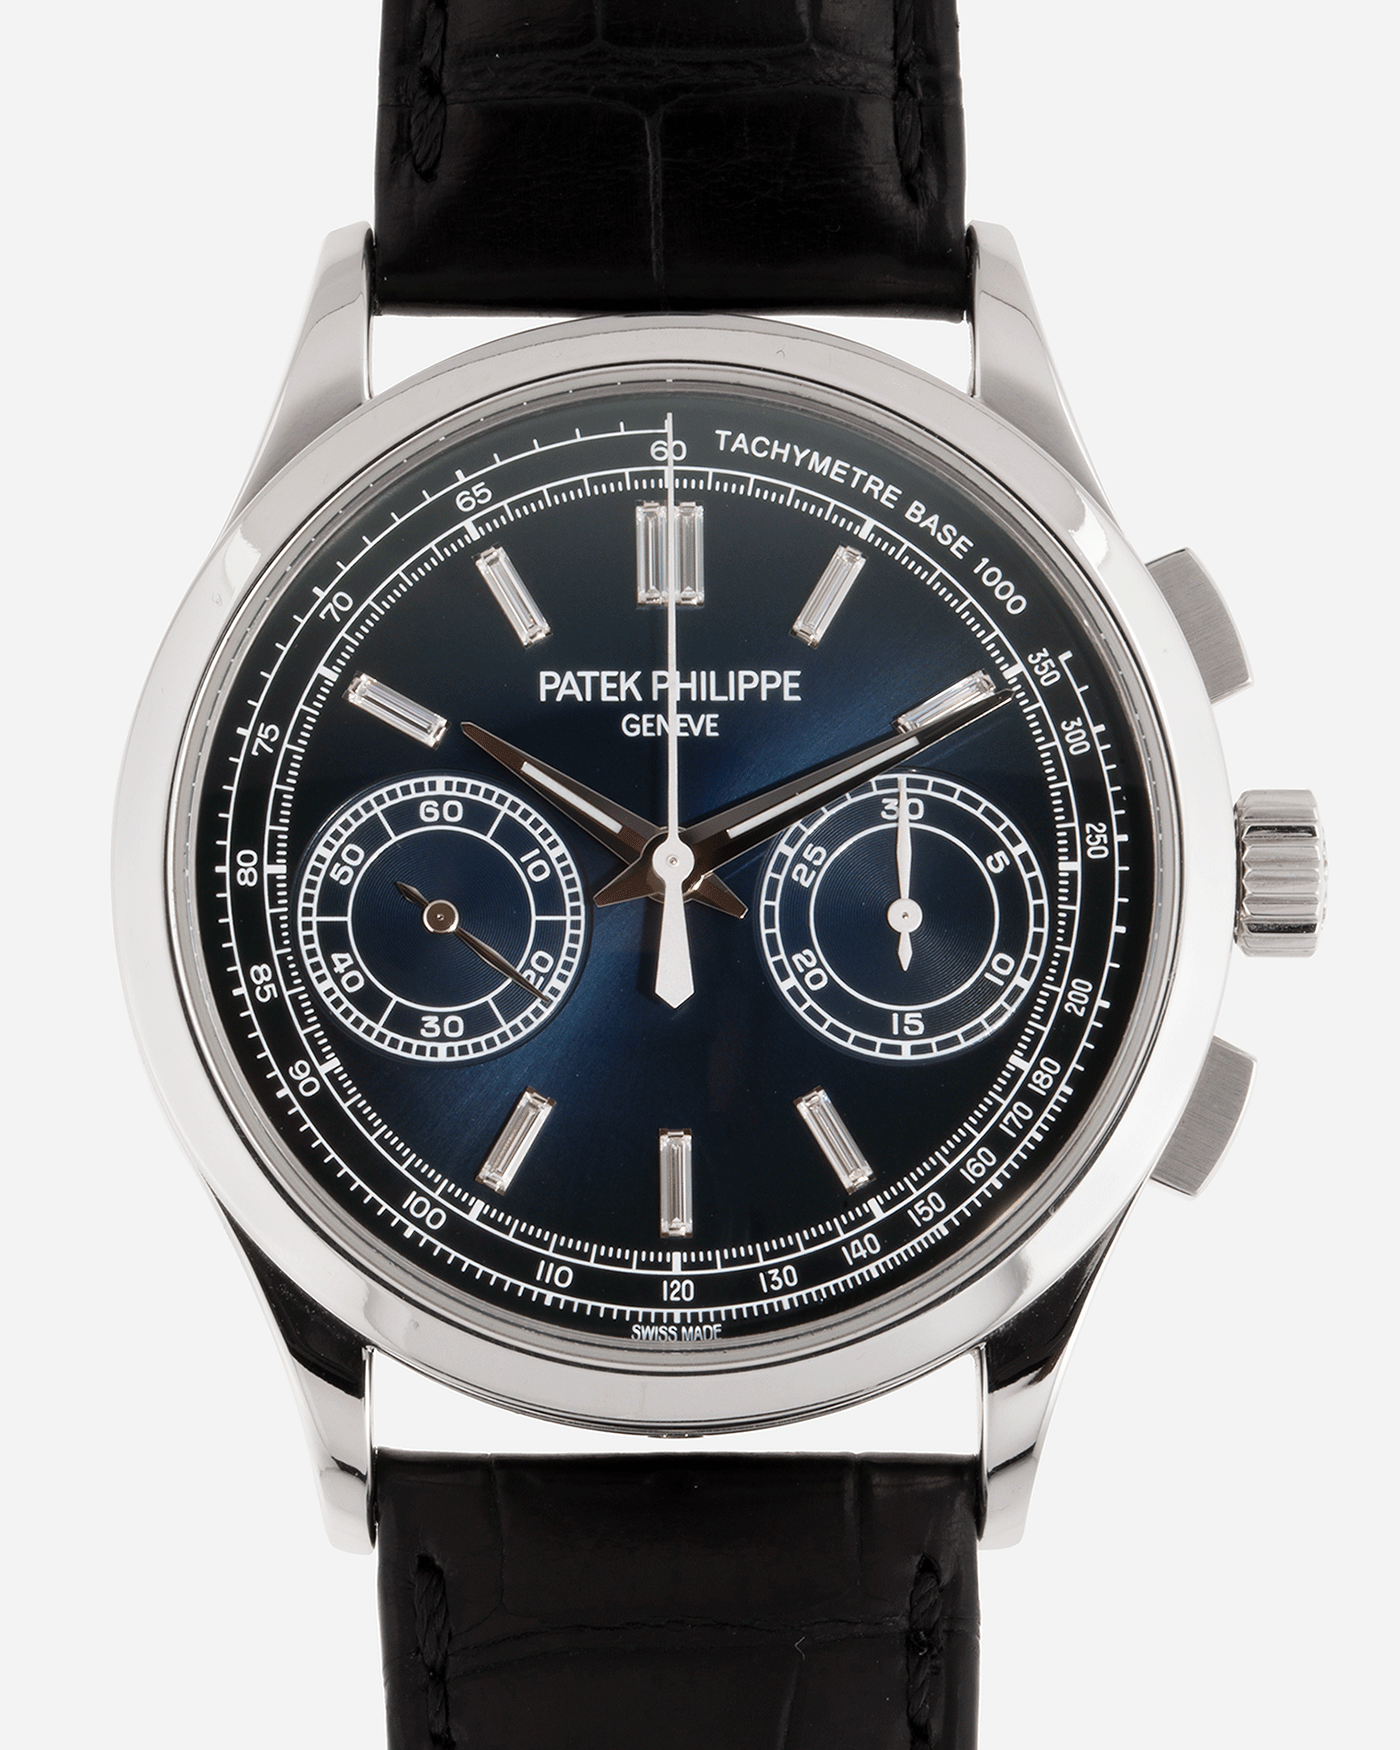 Brand: Patek Philippe Year: 2019 Model: Chronograph Reference Number: 5170P Material: Platinum Movement: In-House Caliber CH 29-535 PS Case Diameter: 39.4mm Bracelet: Nostime Patek Philippe Black Alligator Strap with Platinum Deployant Clasp